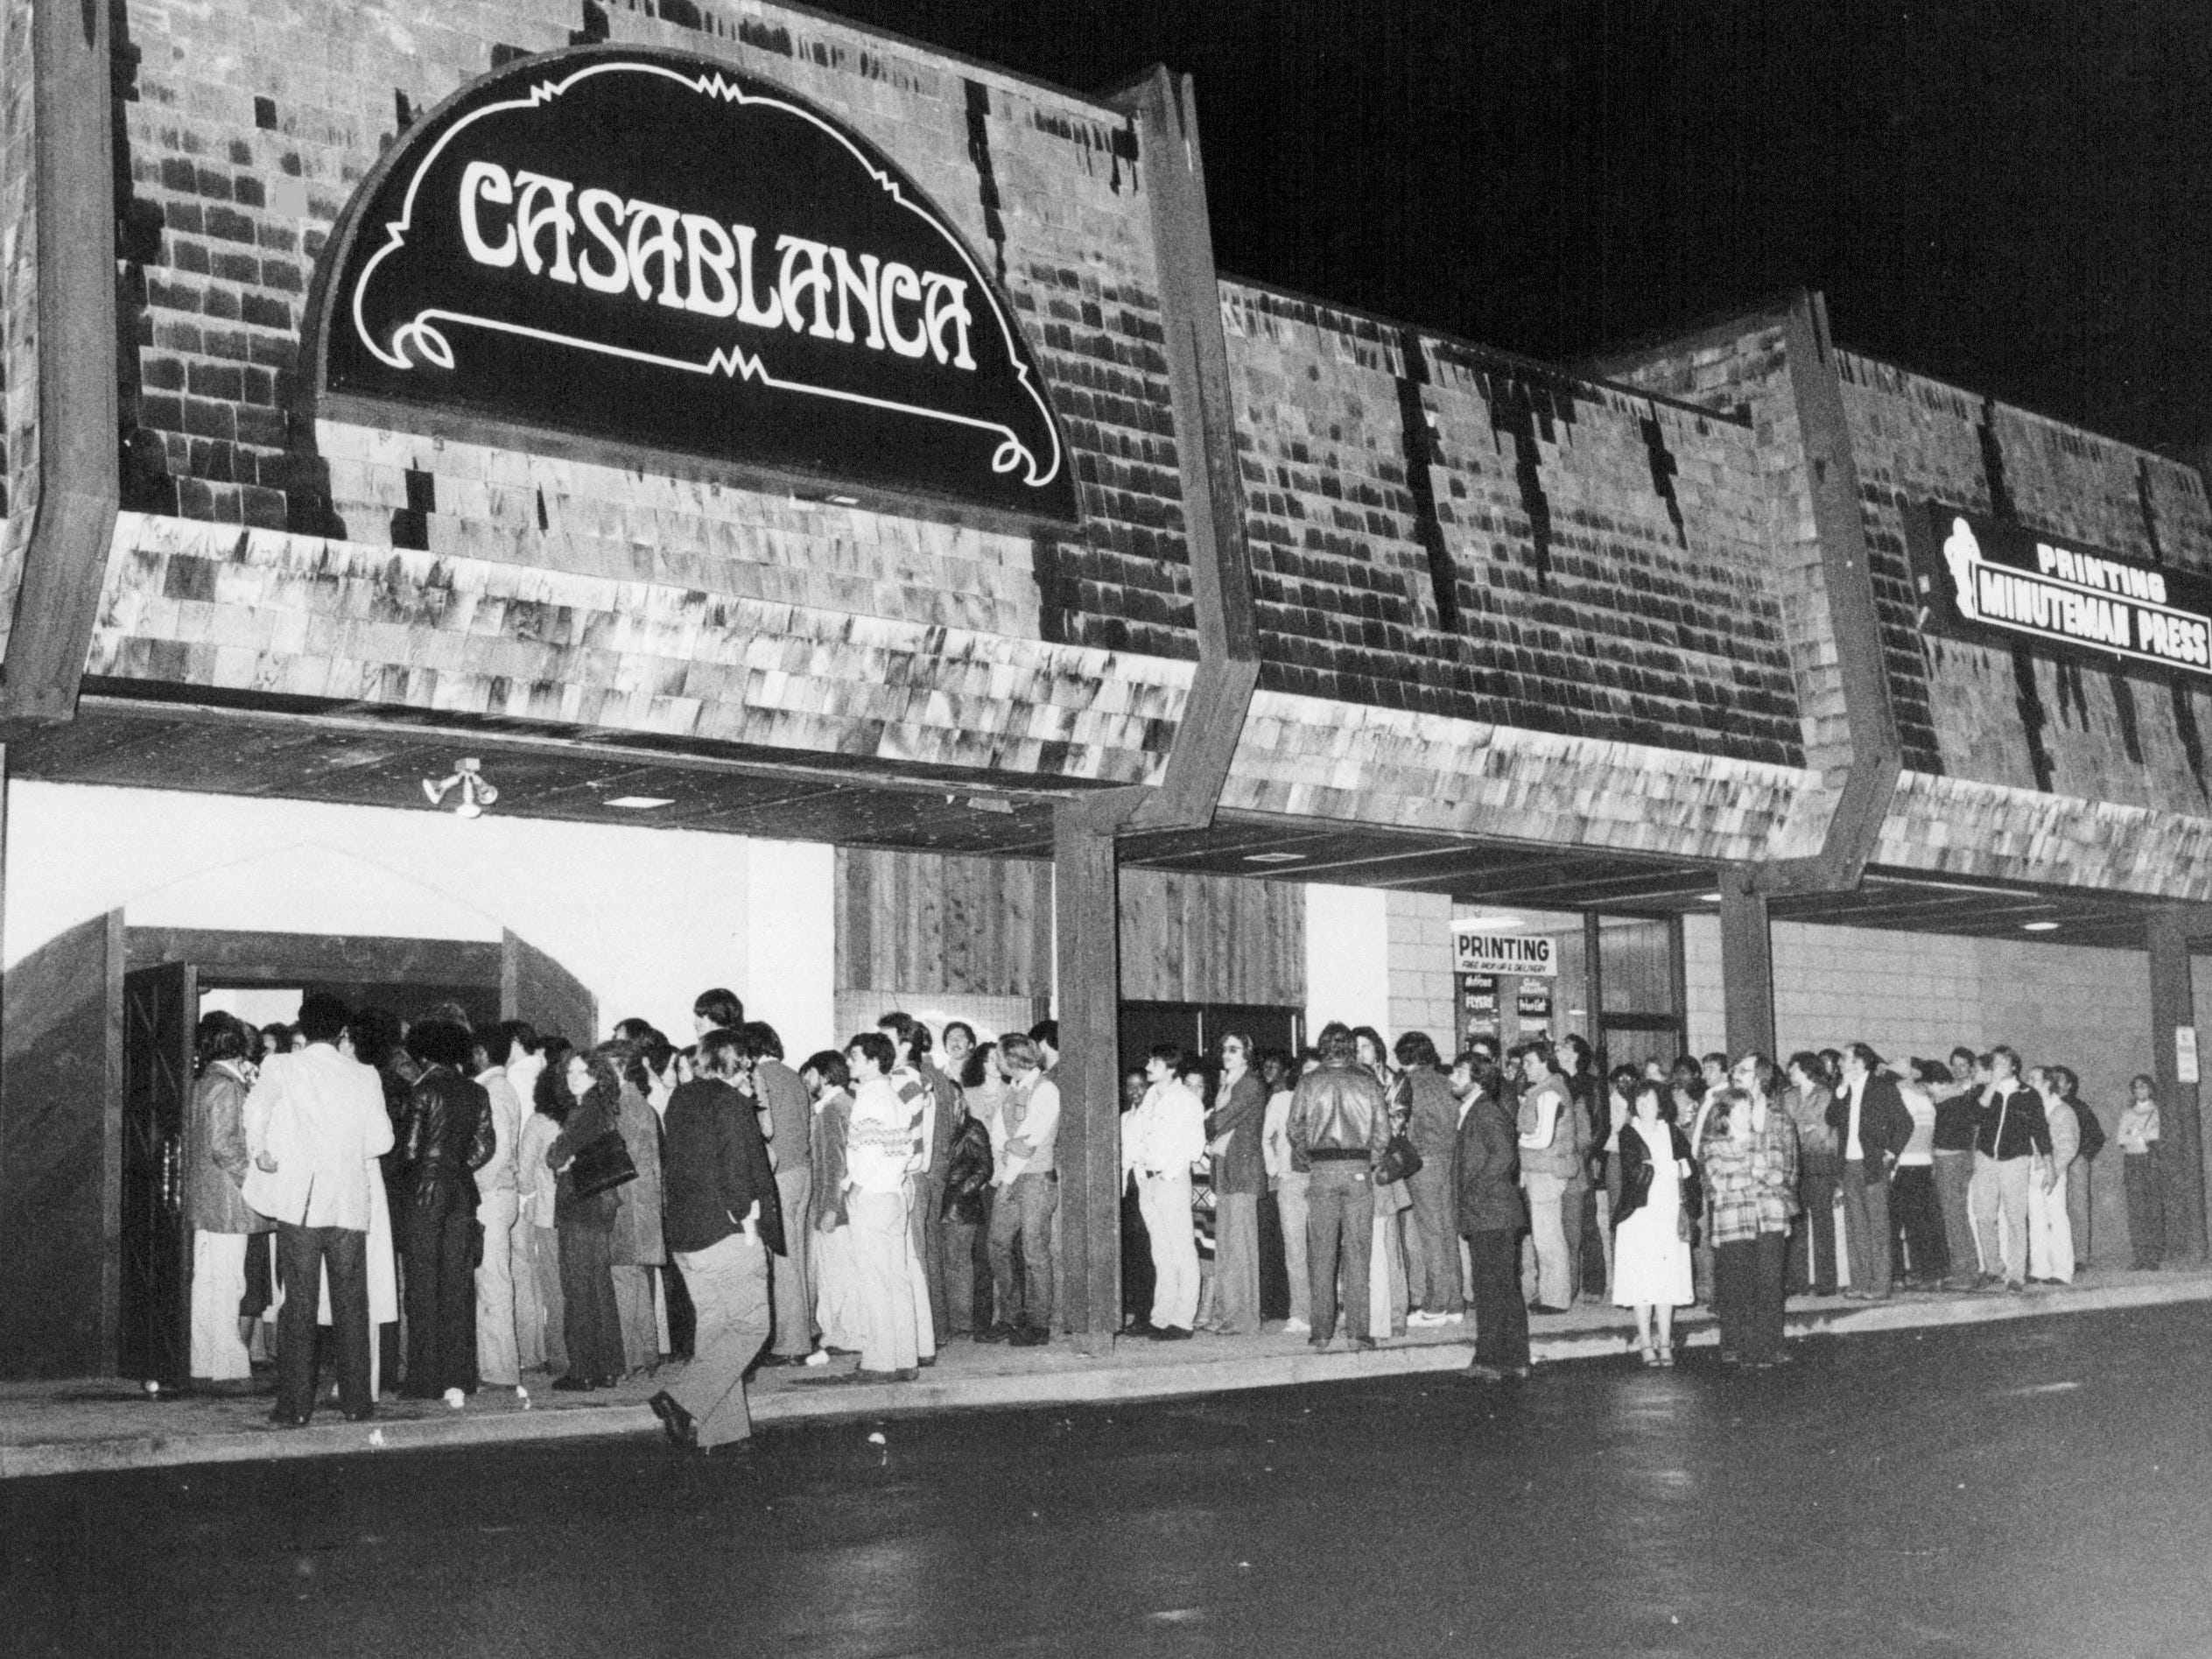 In this 1980 photo, hundreds of fans line up outside of the Casablanca in Henrietta to try to see Spyro Gyra.